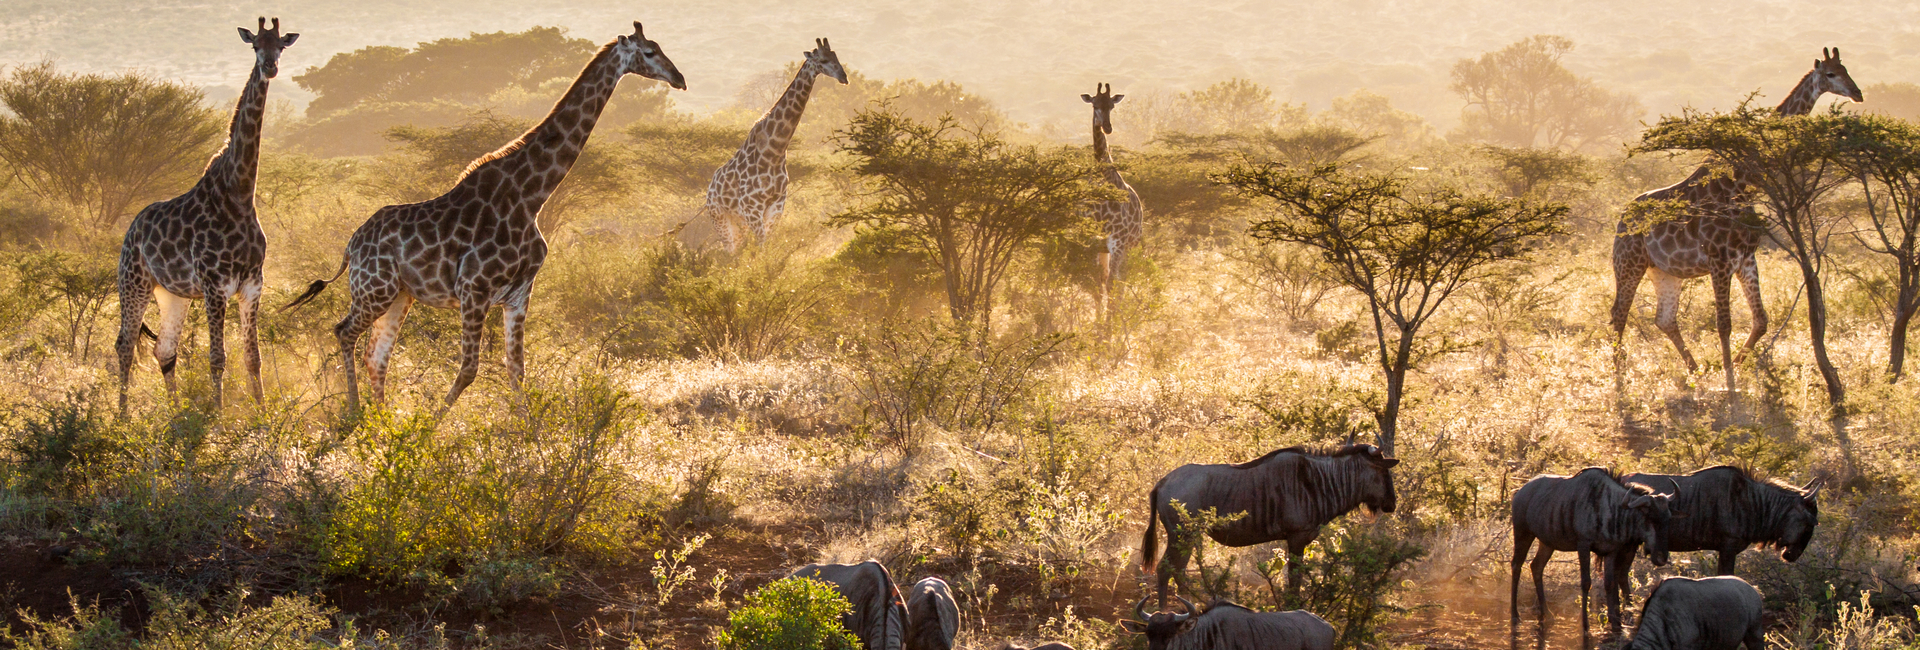 Travel to Africa to experience the true Africa feeling and its wildlife